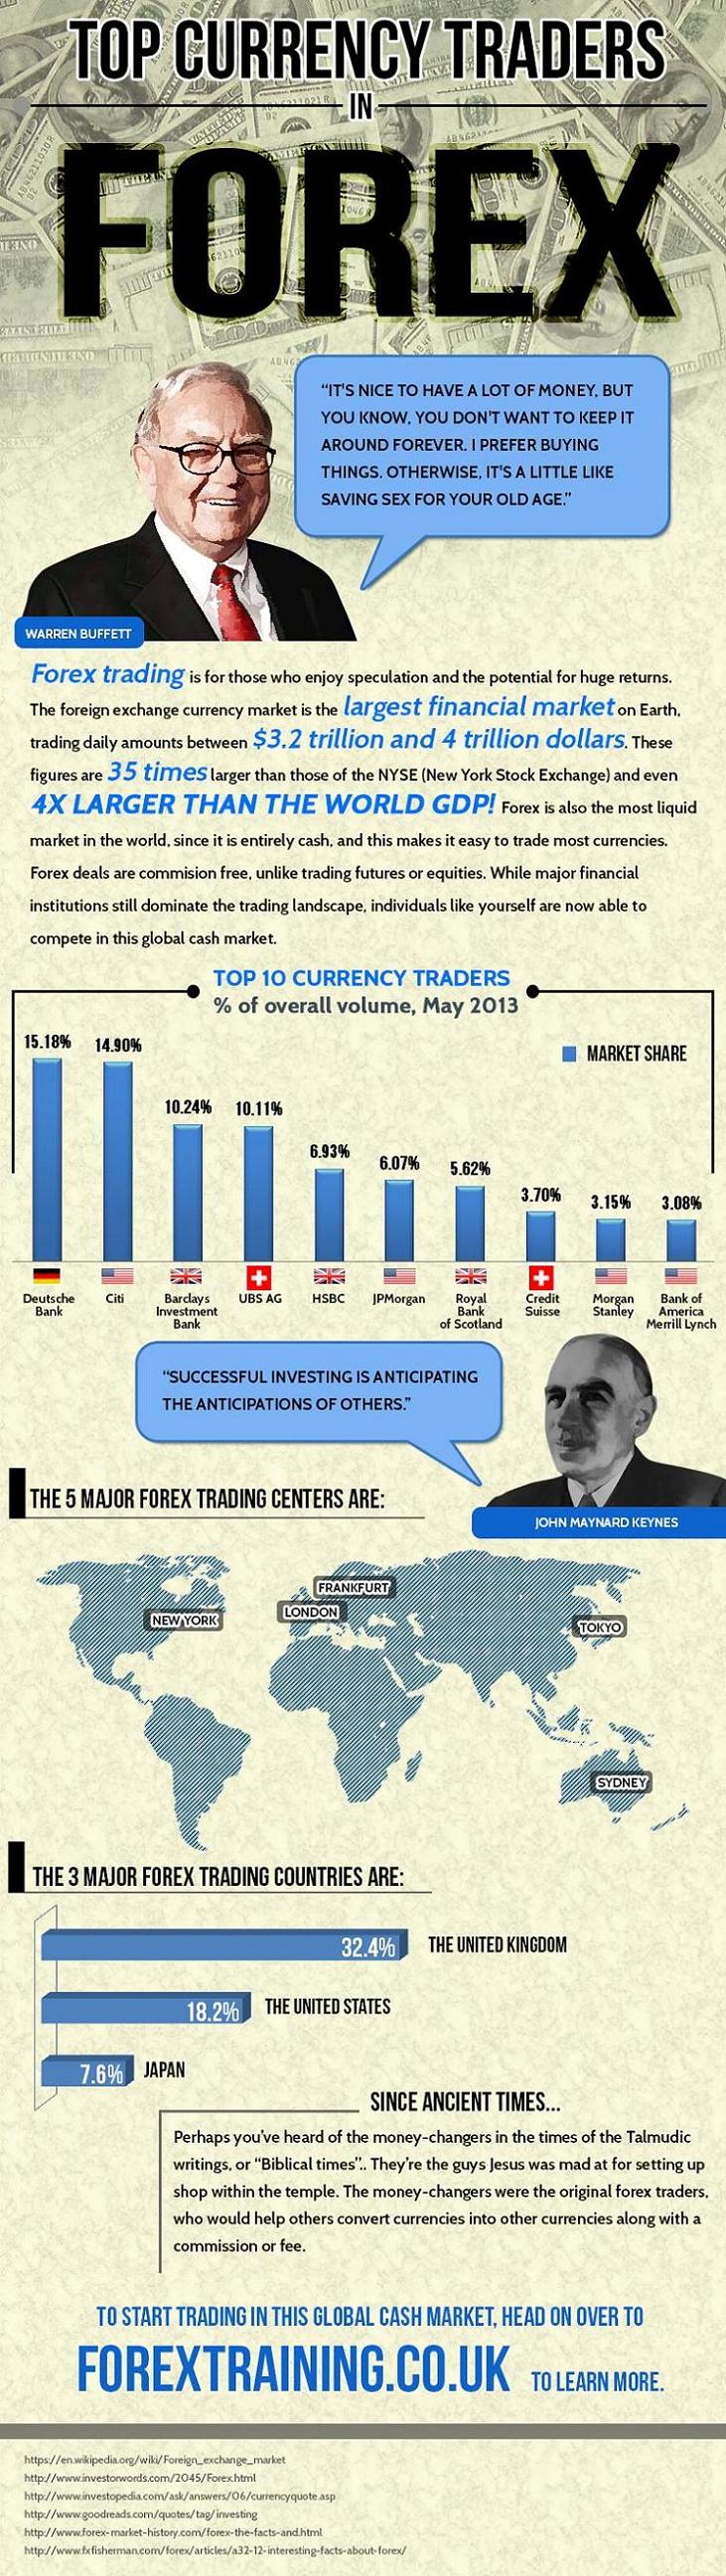 Who are the Biggest Forex Traders in the world? – blogger.come